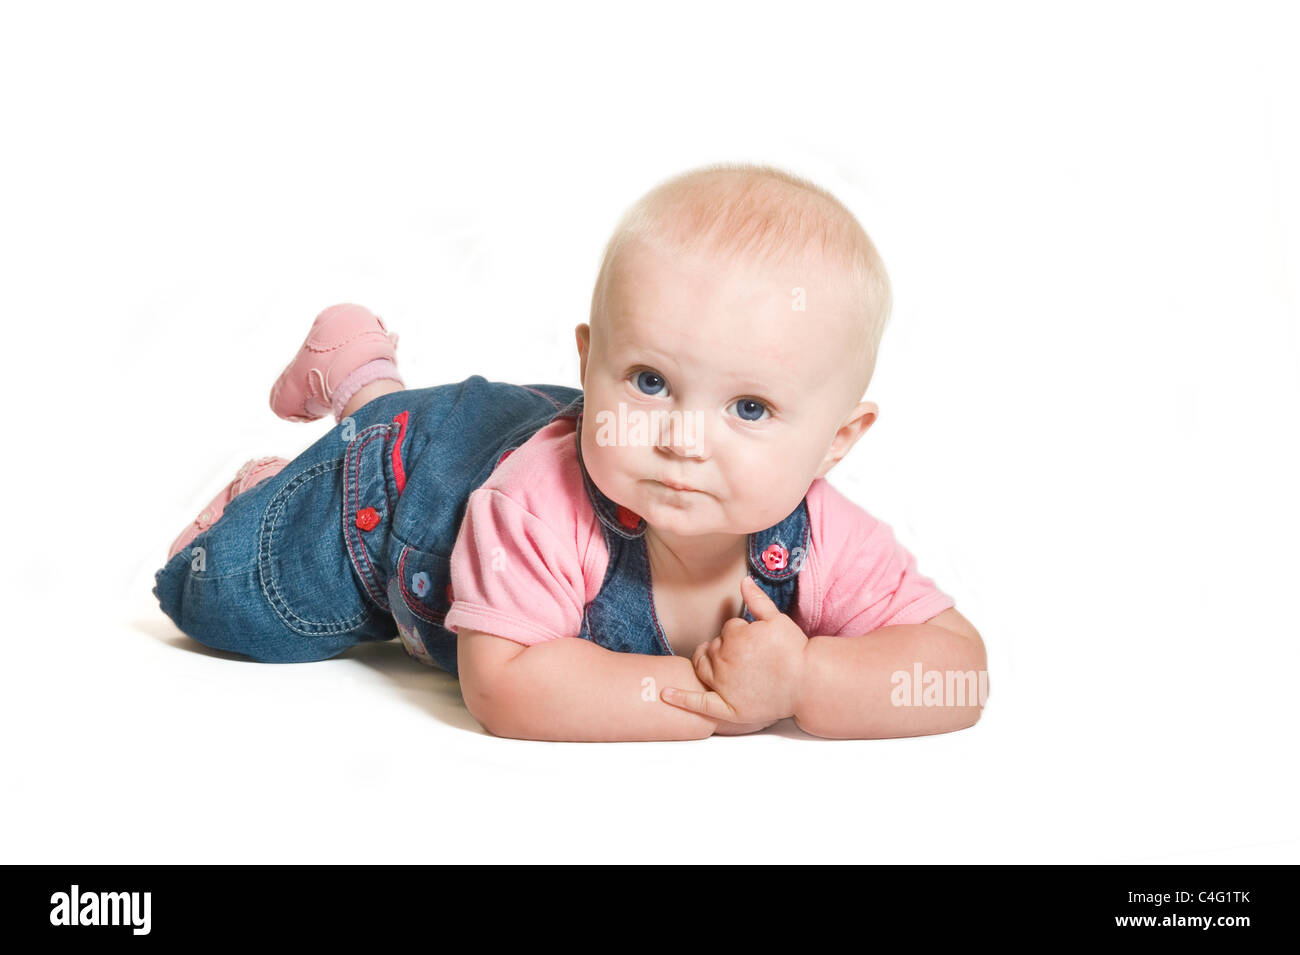 a cute 1 year old baby girl with blue eyes wearing denim and pink